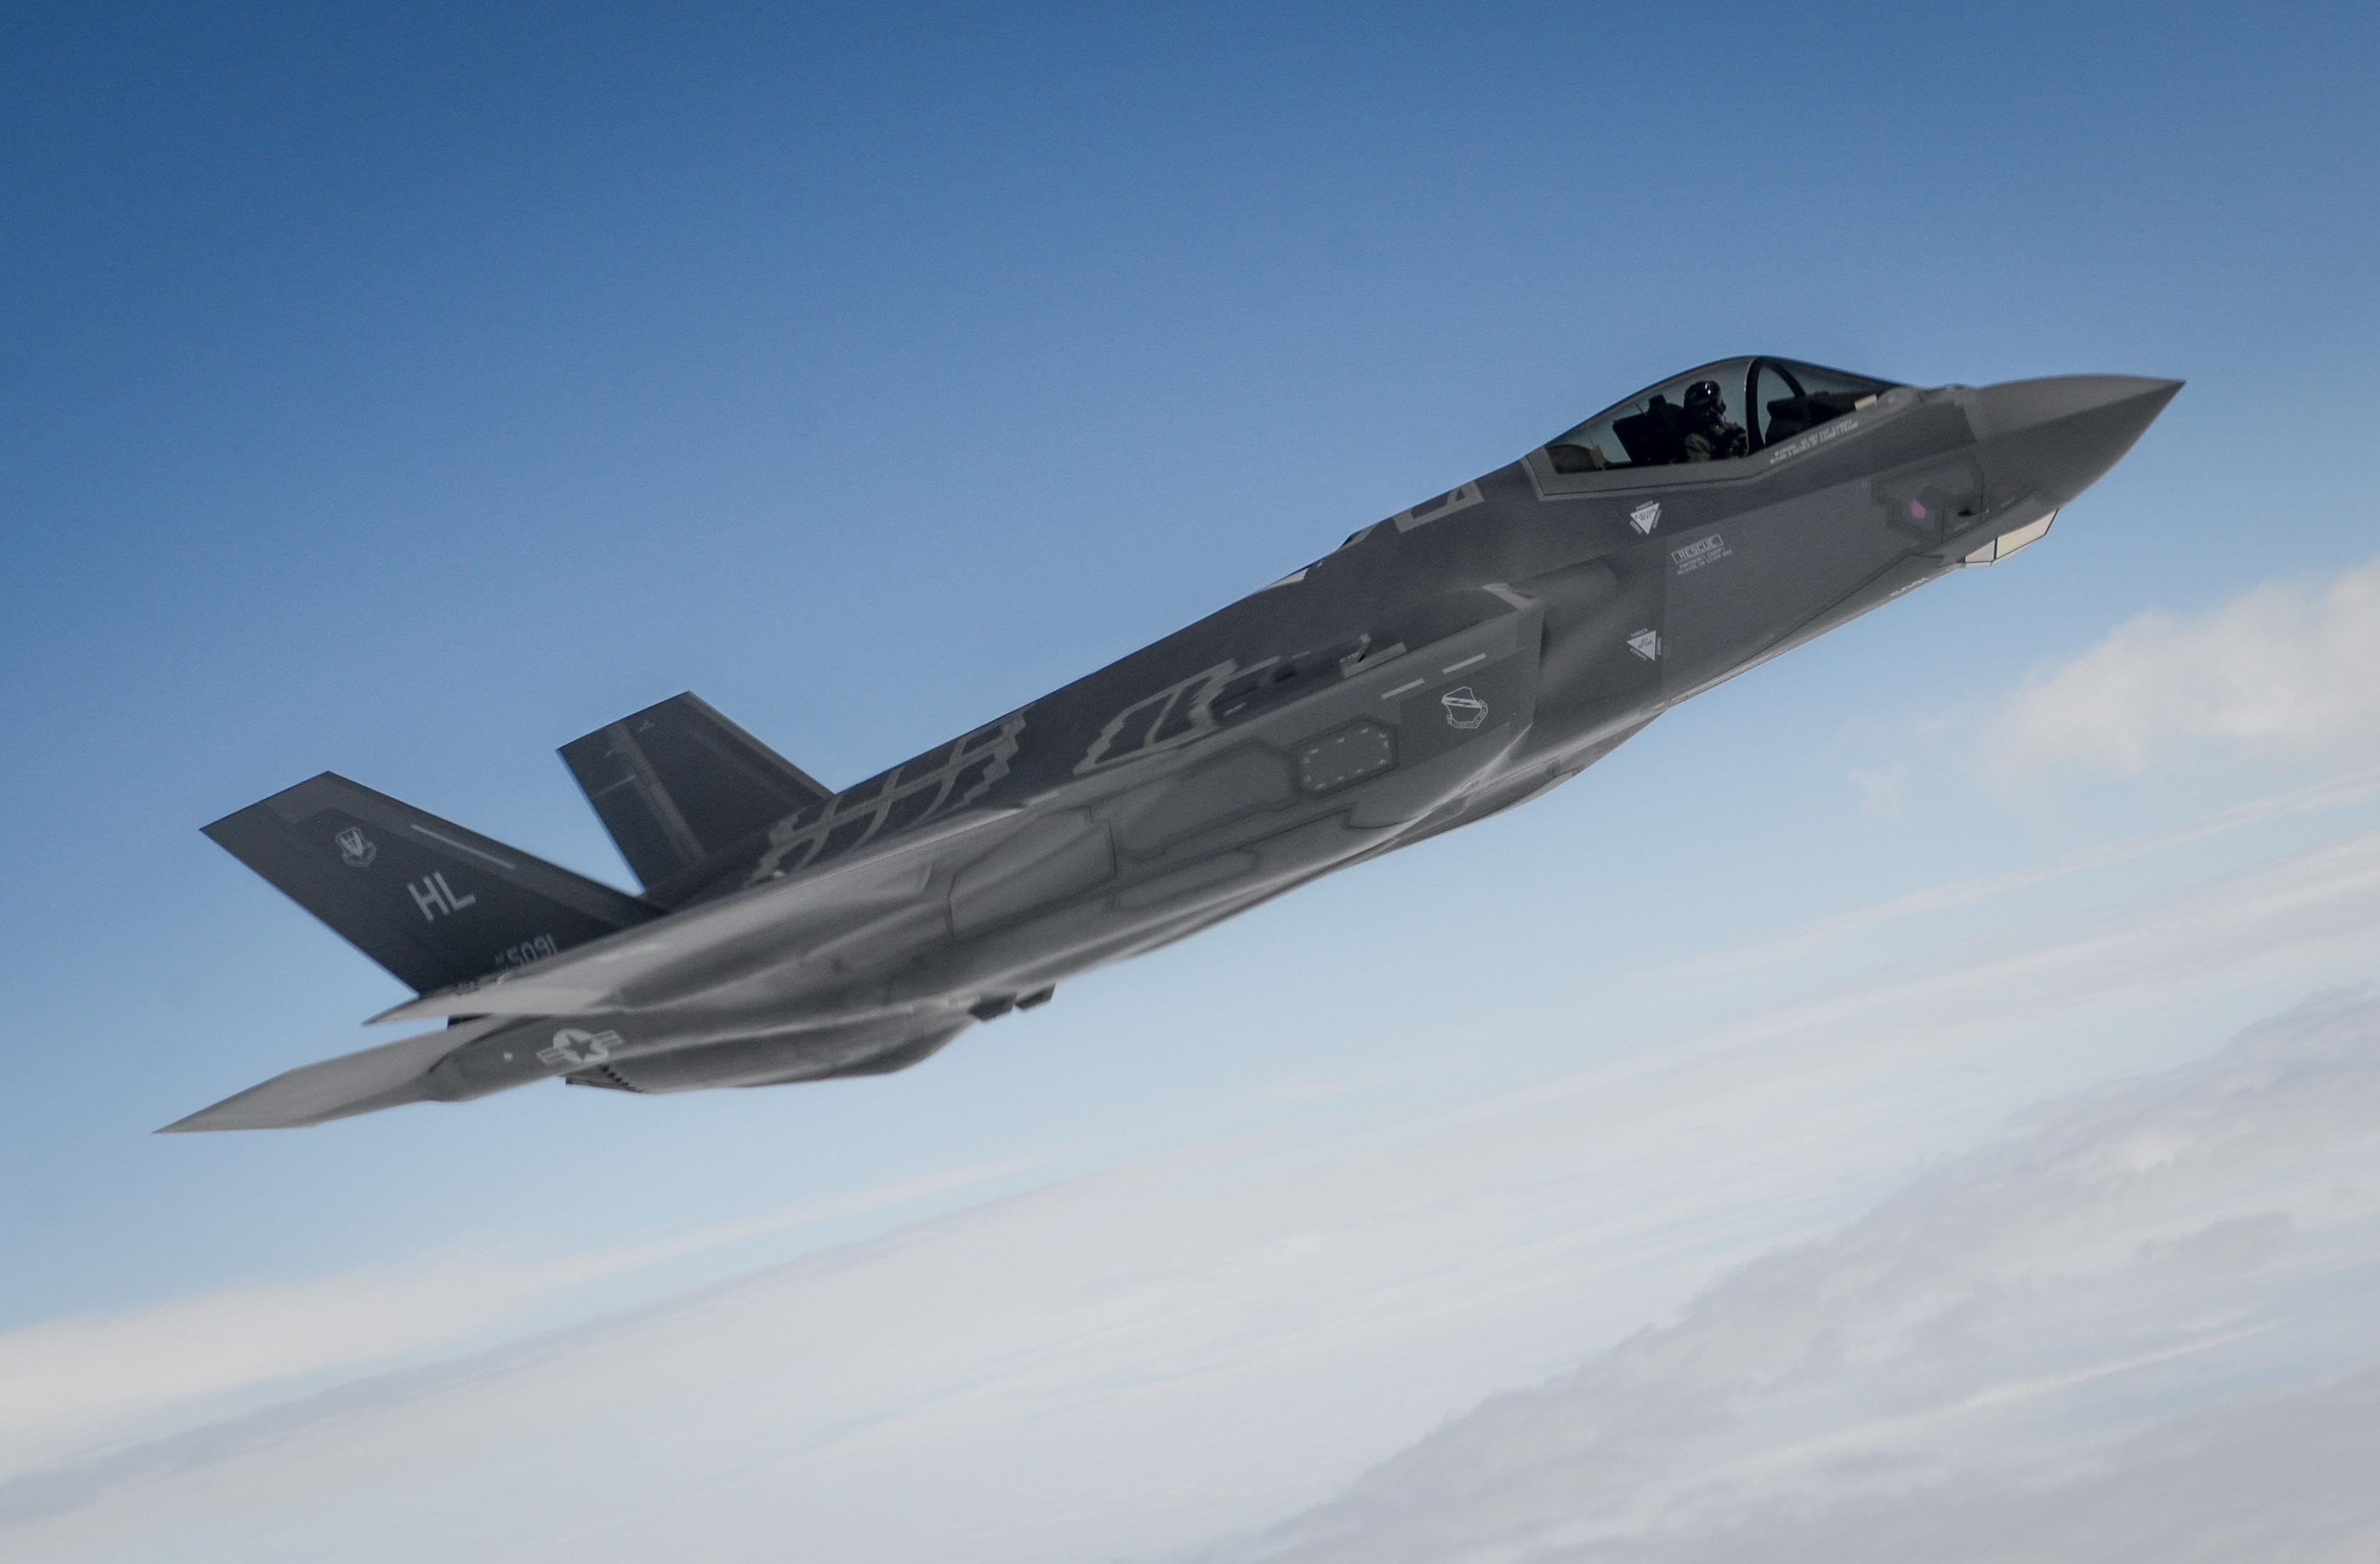 F-35 fighter jets to operate out of Alabama base